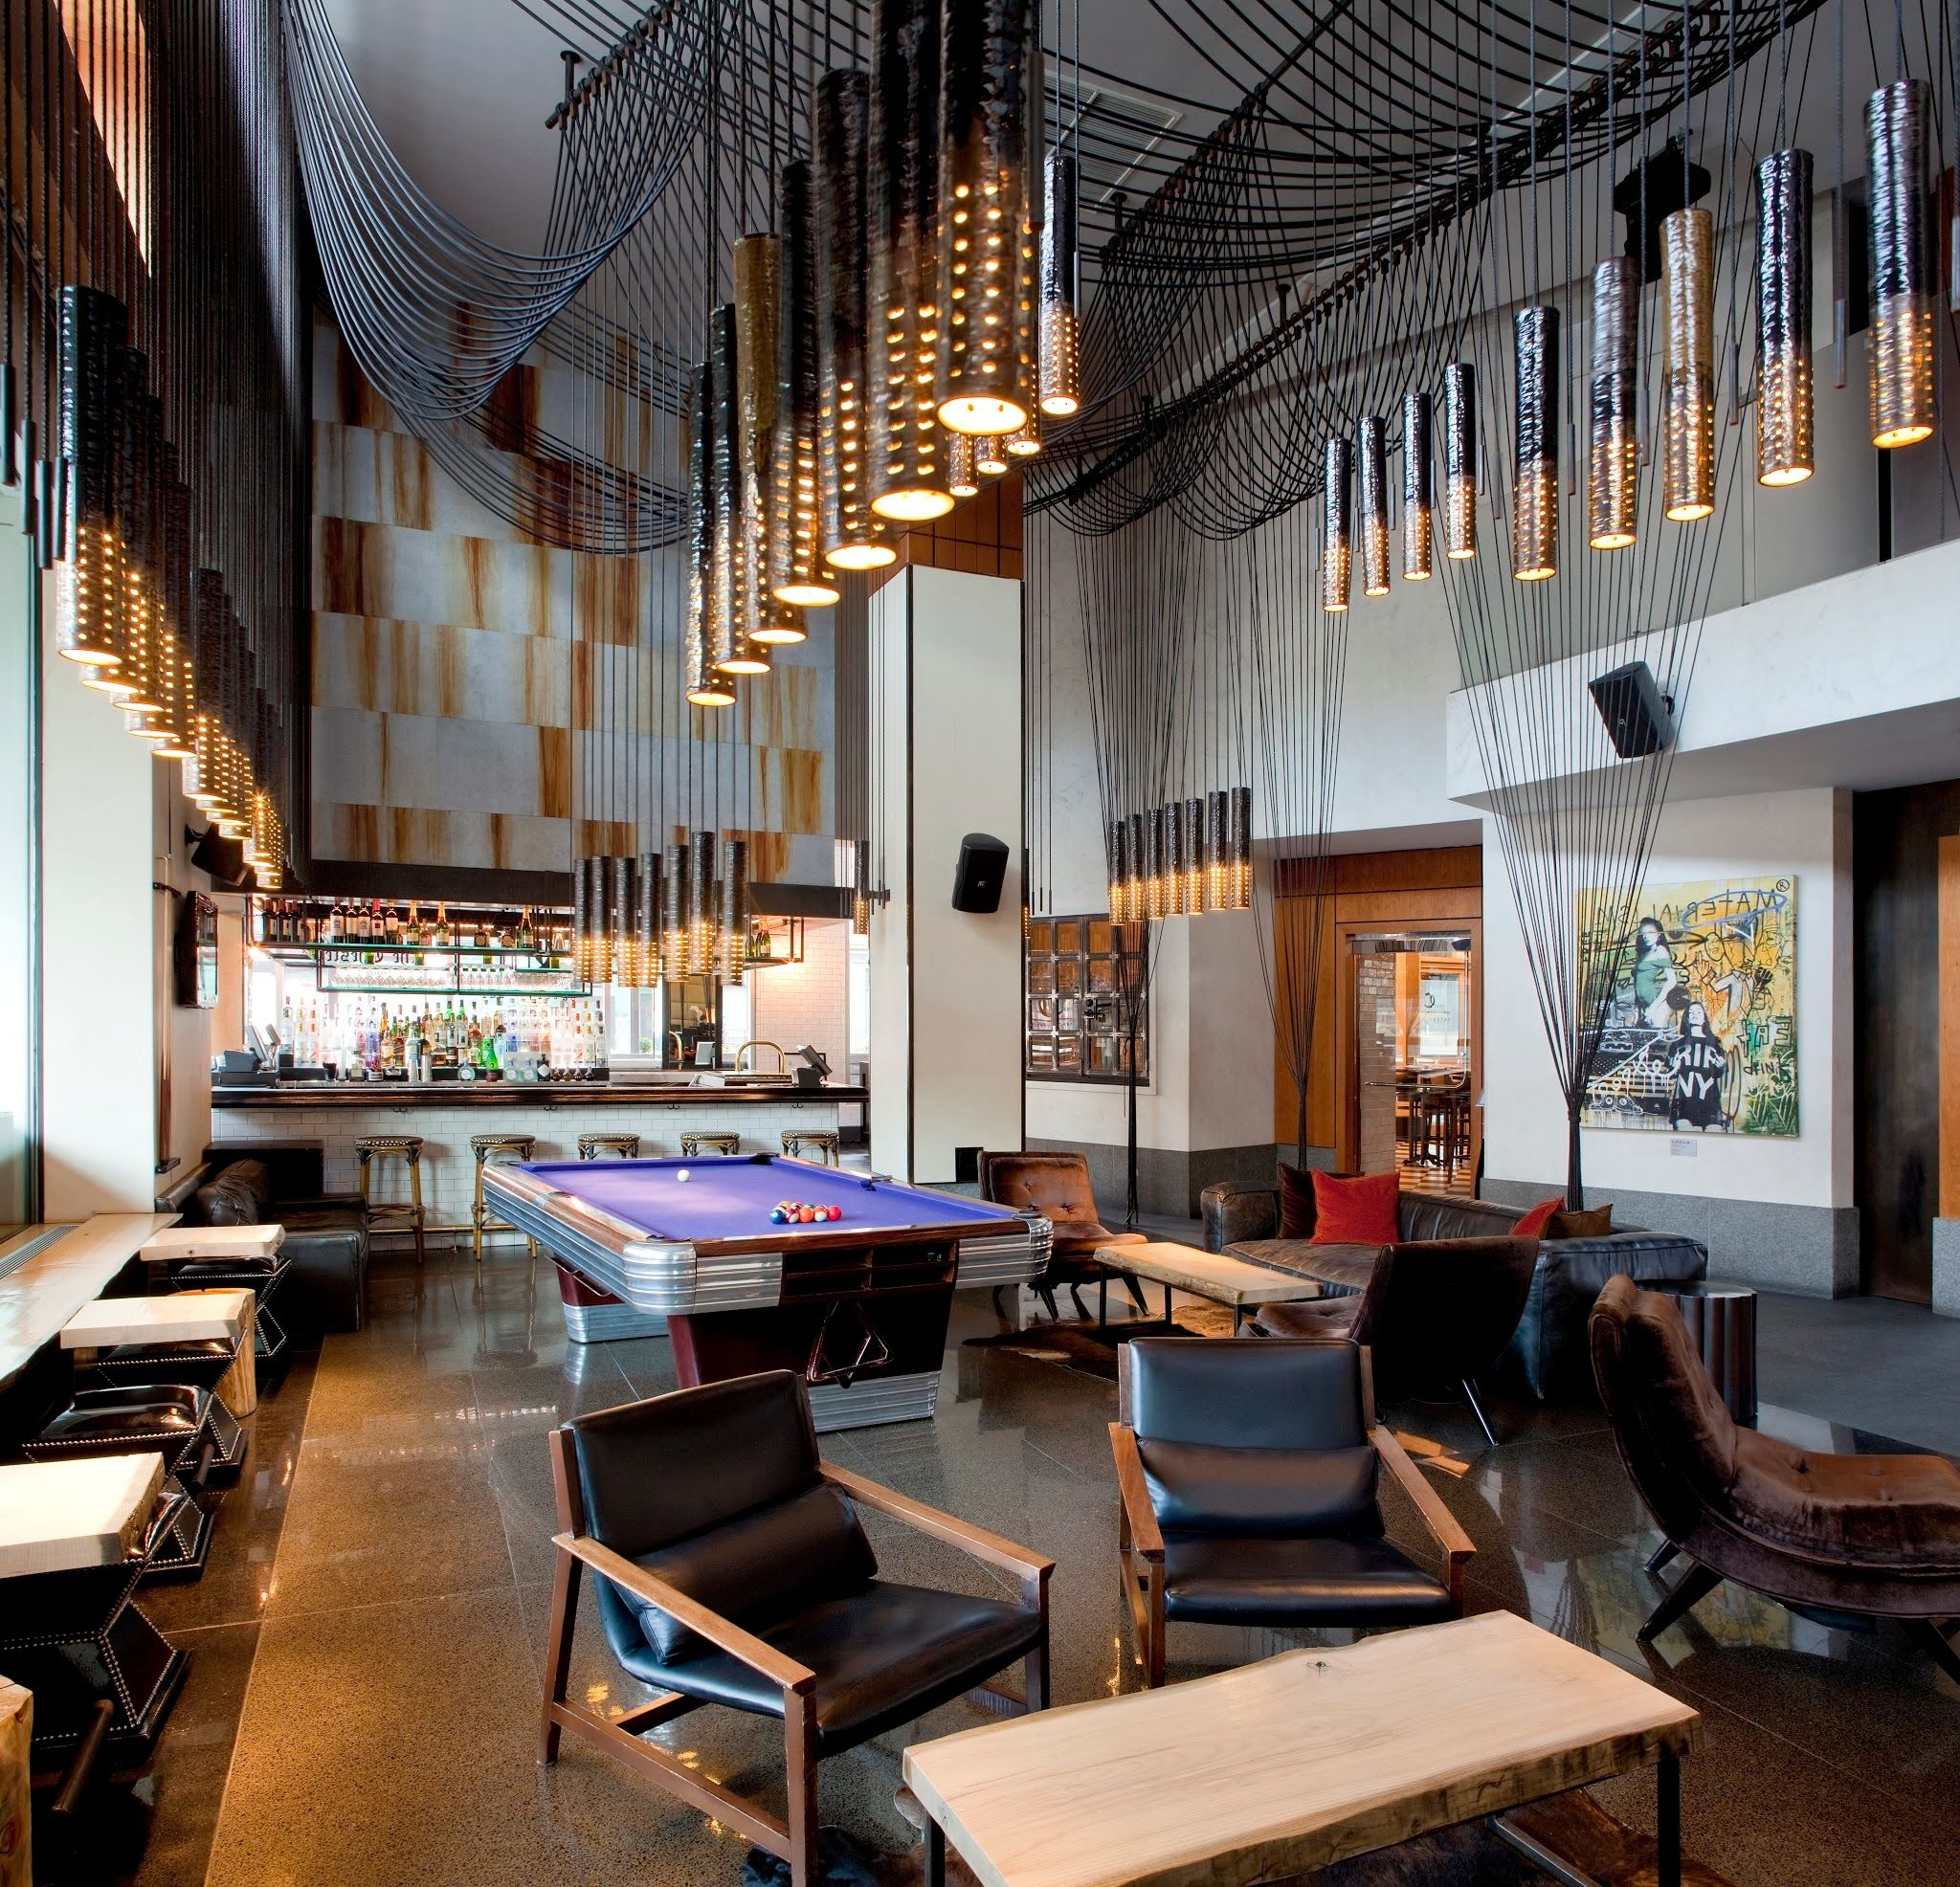 Living Room Bar Nyc The Chic Hotel Lobby Complete With A Bar And Pool Table To